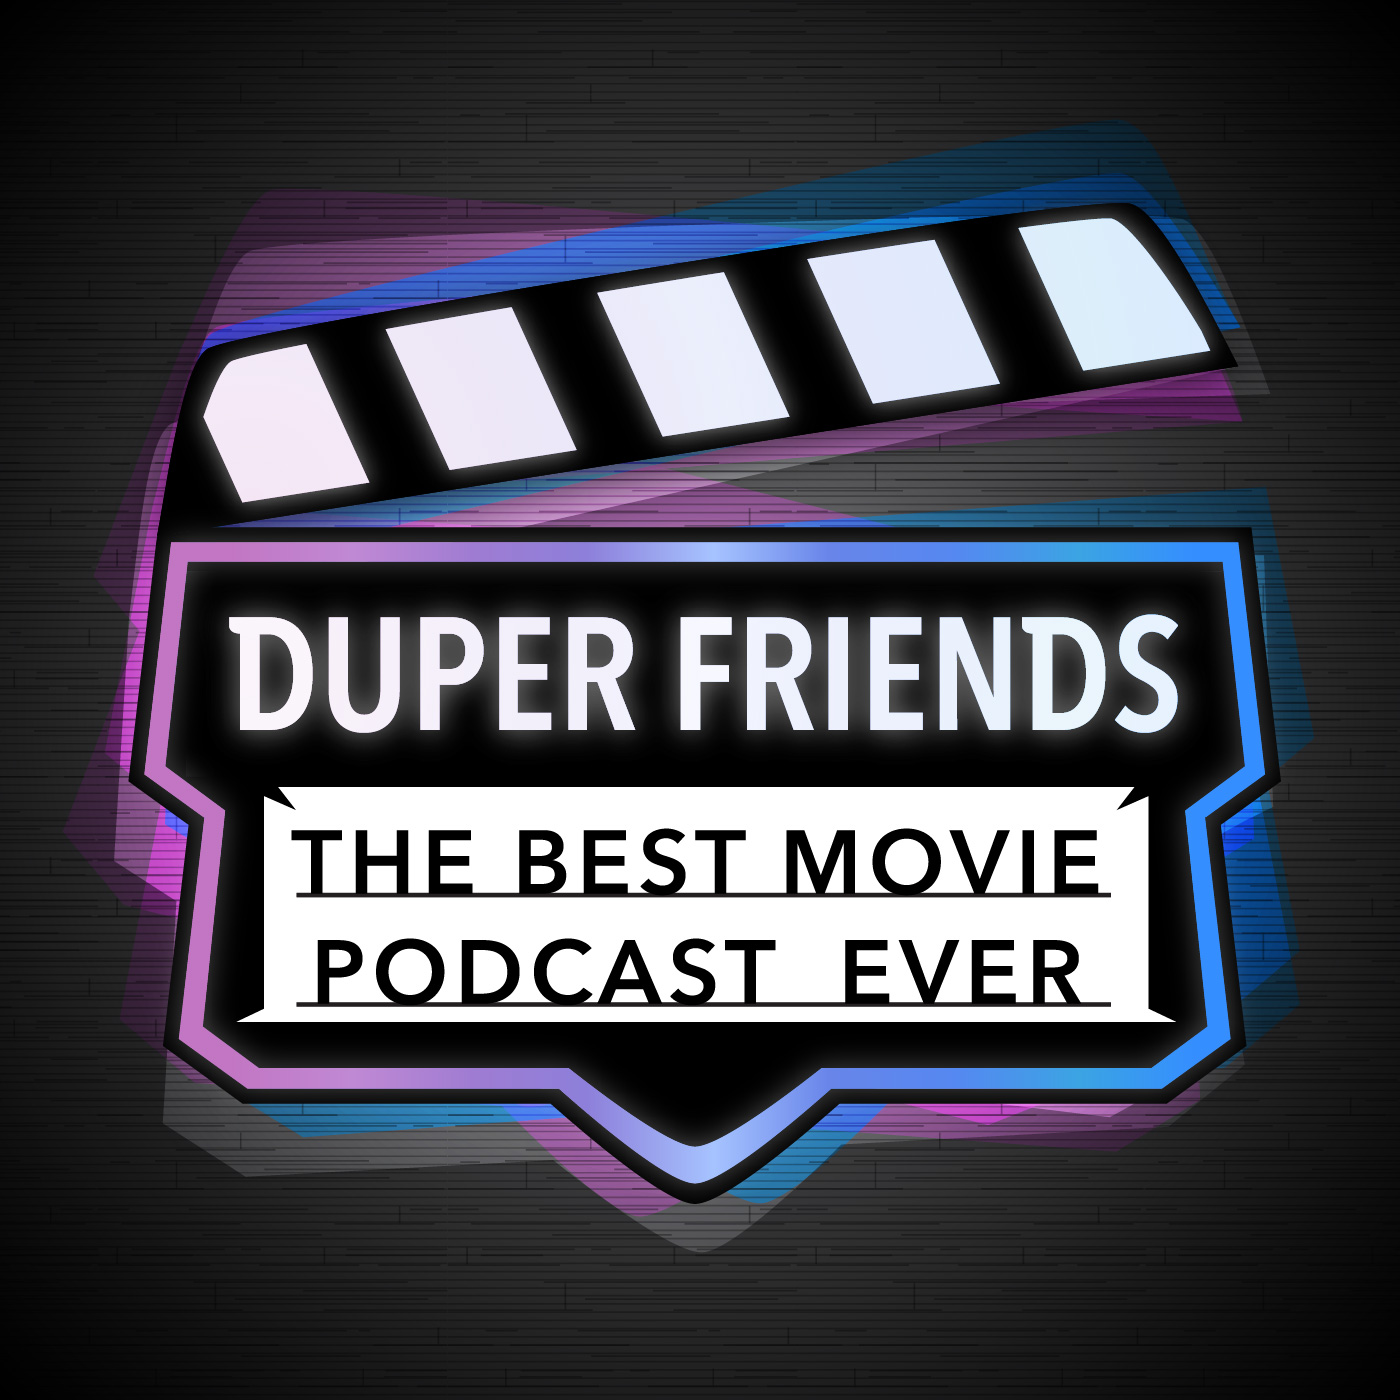 duper-friends-podcast